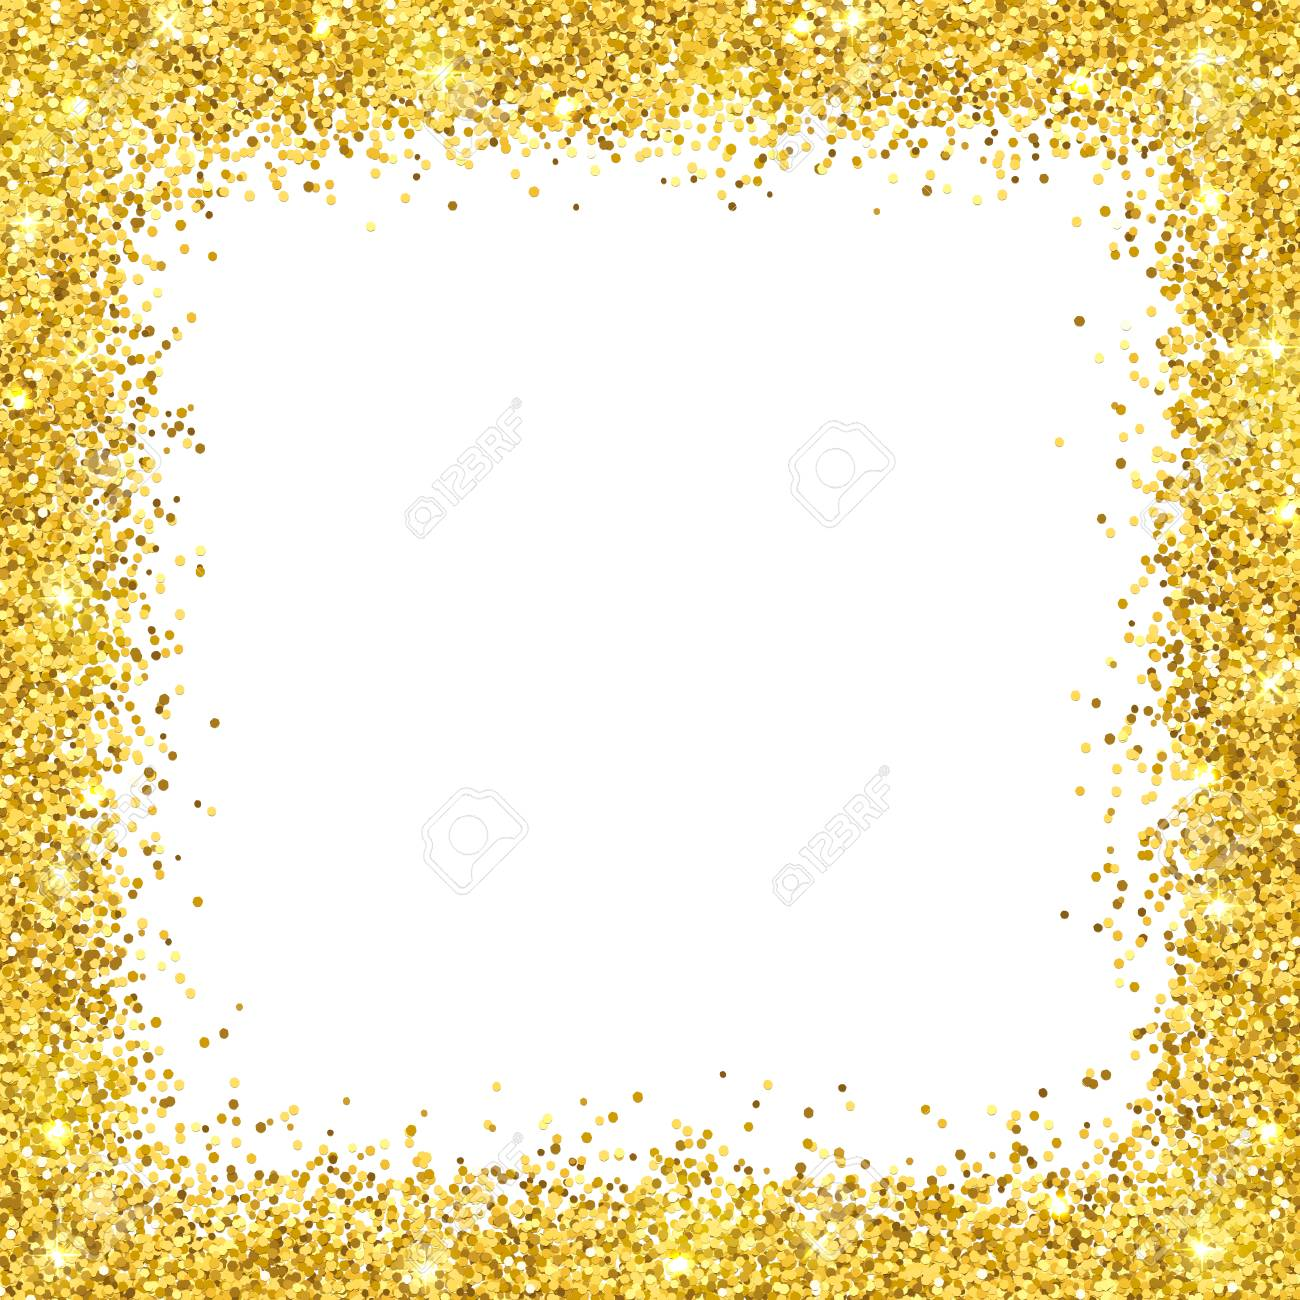 Groovy G Glitter Border Frame On Stock Vector G Glitter Border Frame On Royalty Free G Glitter Border Paper G Glitter Border inspiration Gold Glitter Border